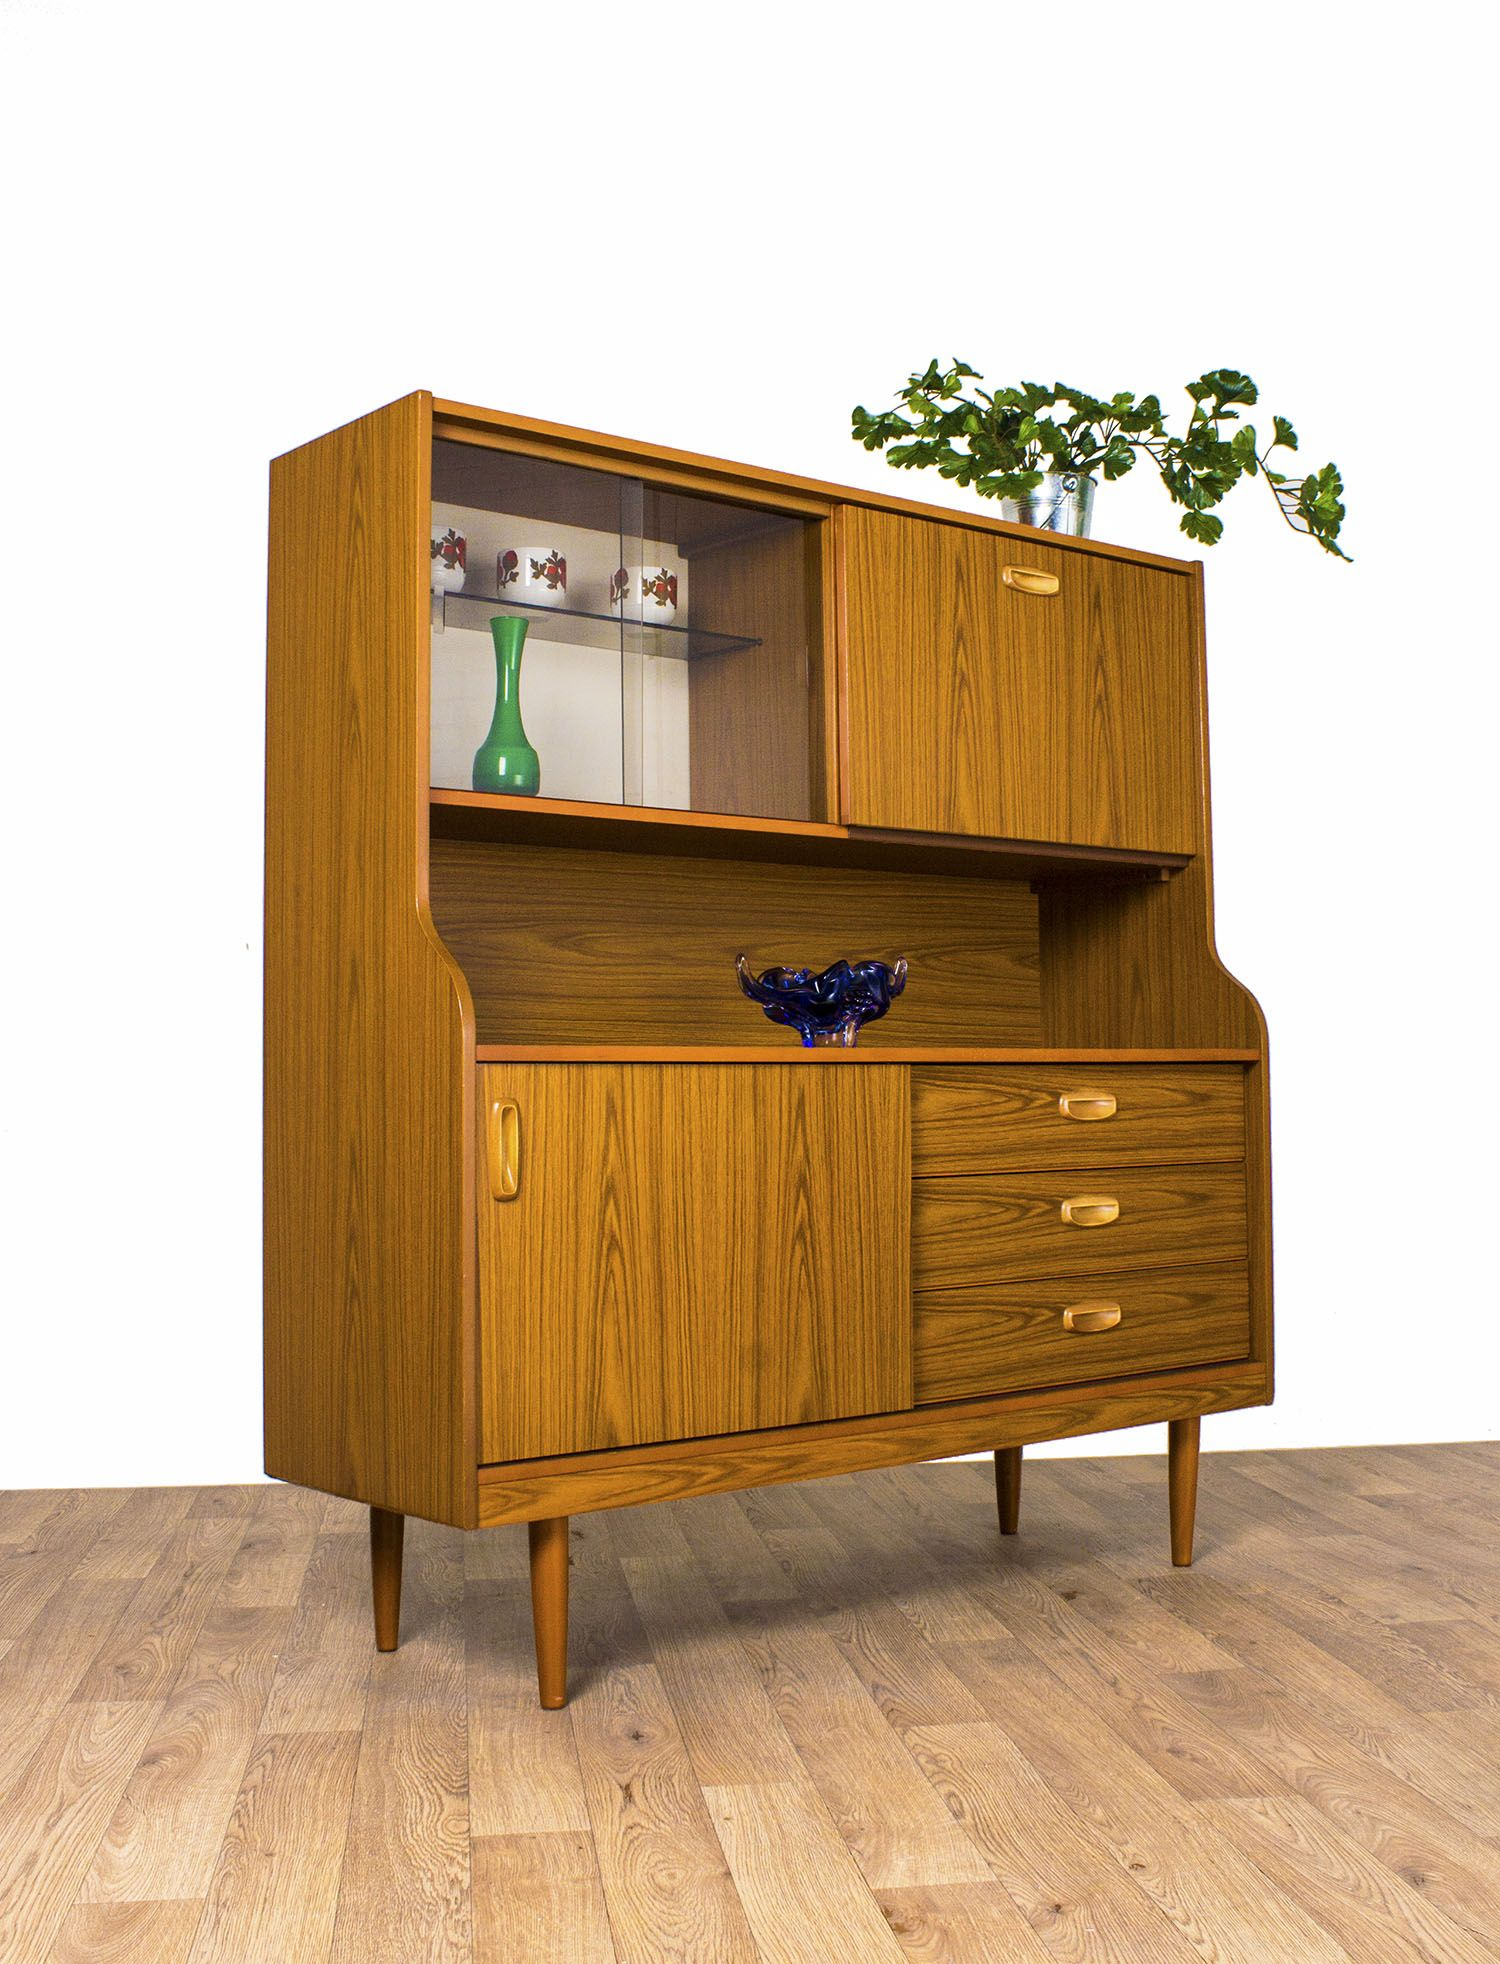 schreiber display cabinet sideboard highboard teak retro. Black Bedroom Furniture Sets. Home Design Ideas